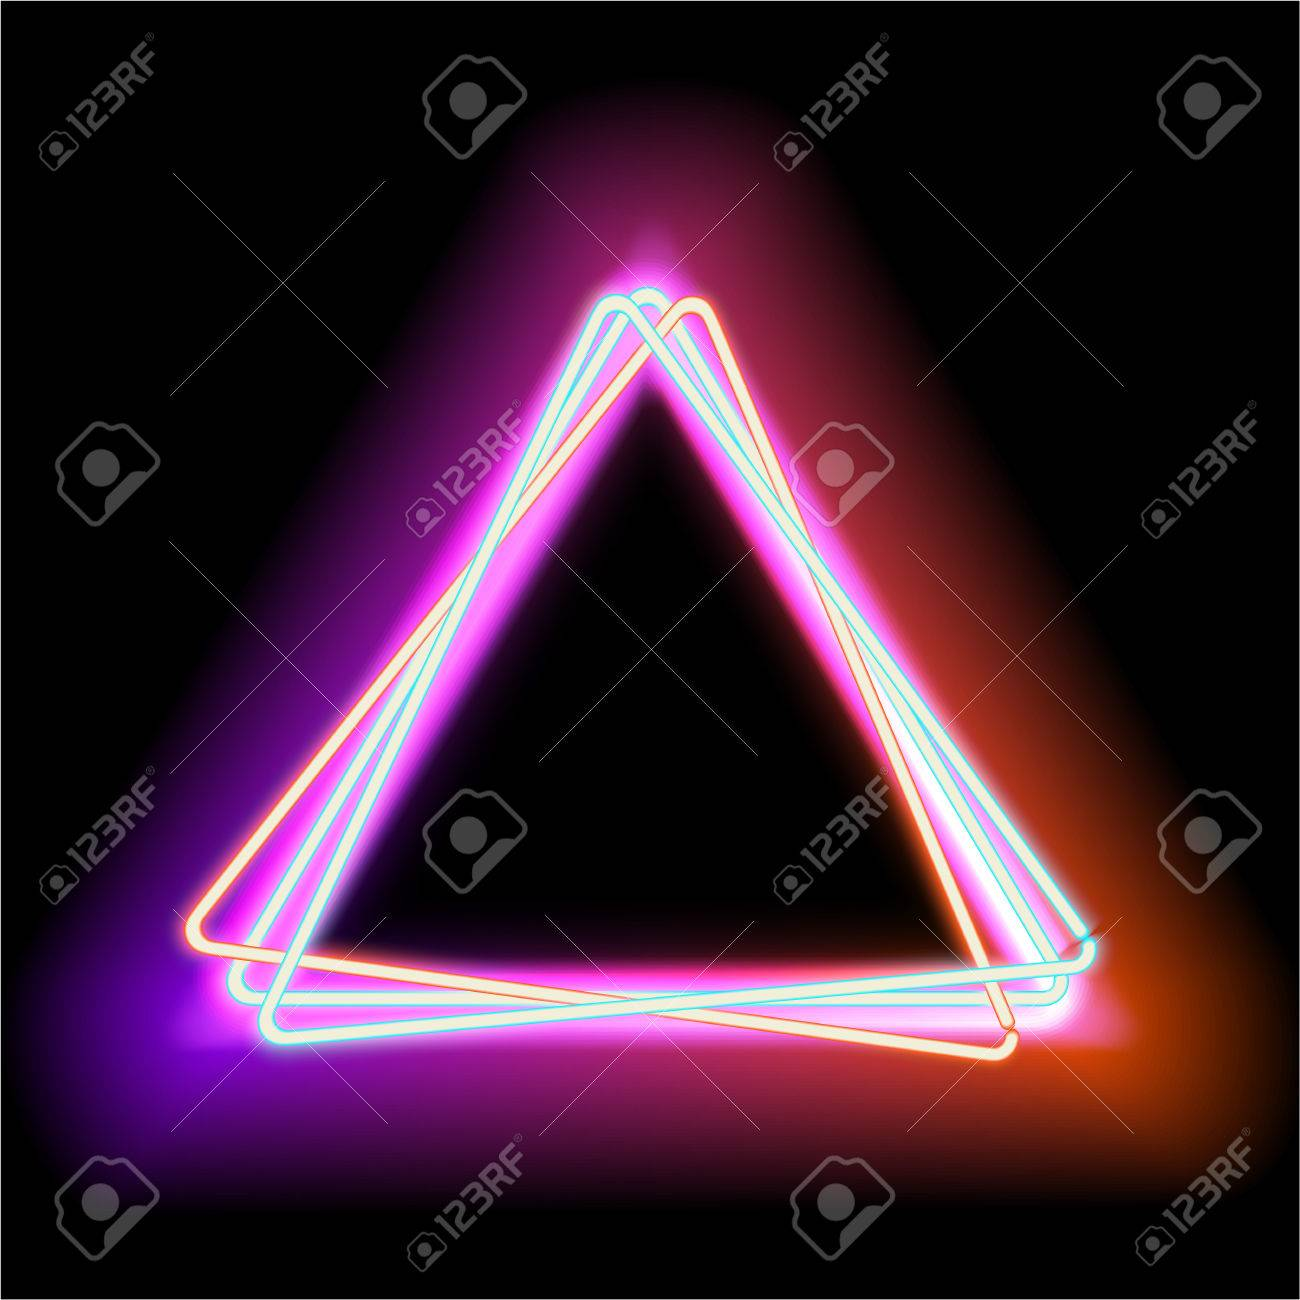 Neon Lamp Neon Triangle Neon Red Light Vector Electric Frame Vintage